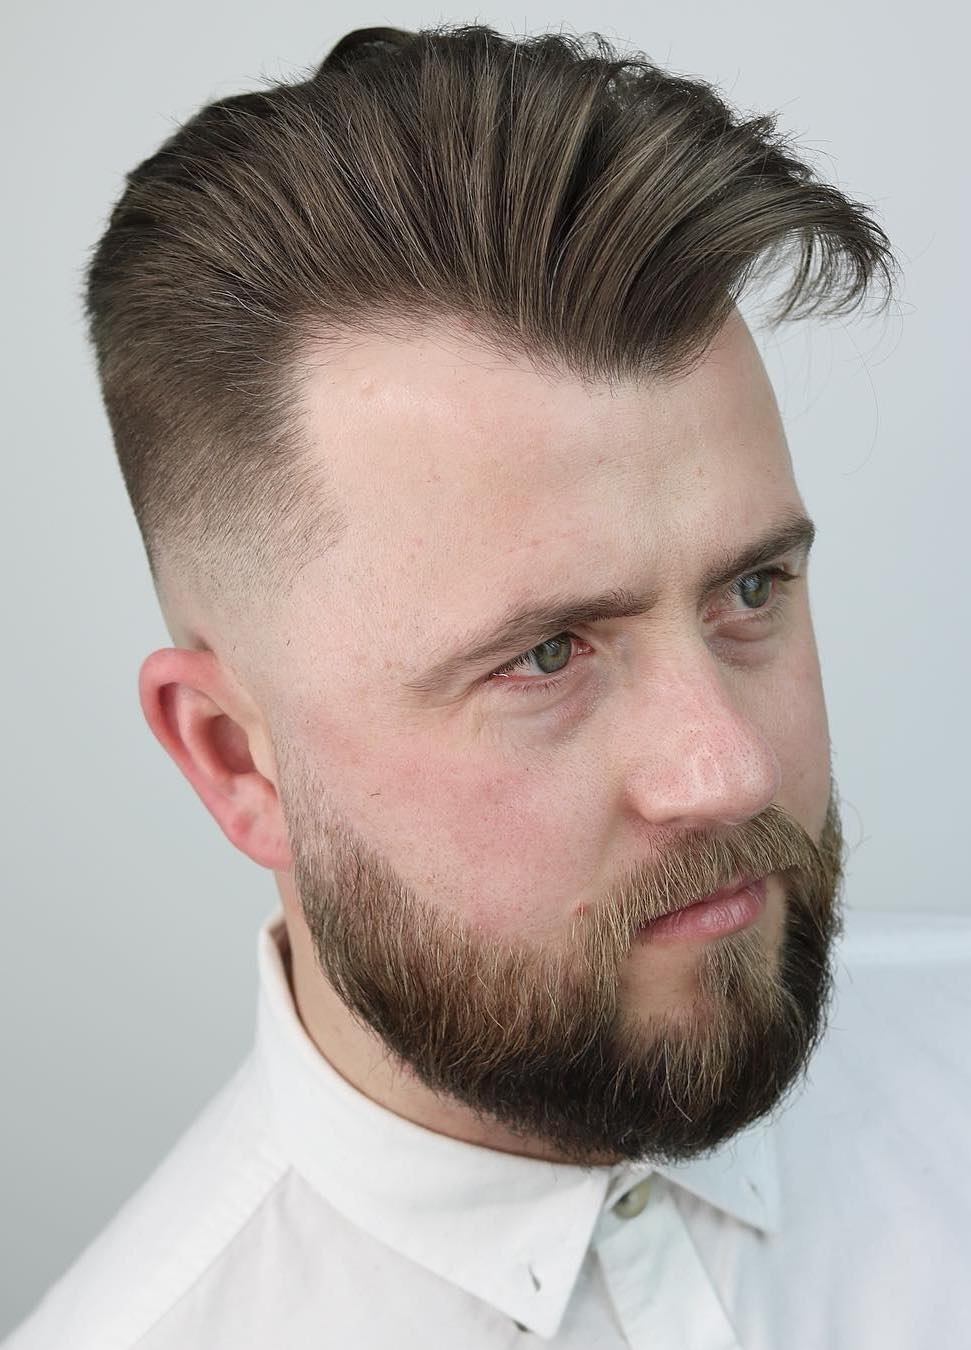 Hairstyles For Men With Receding Temples - Wavy Haircut